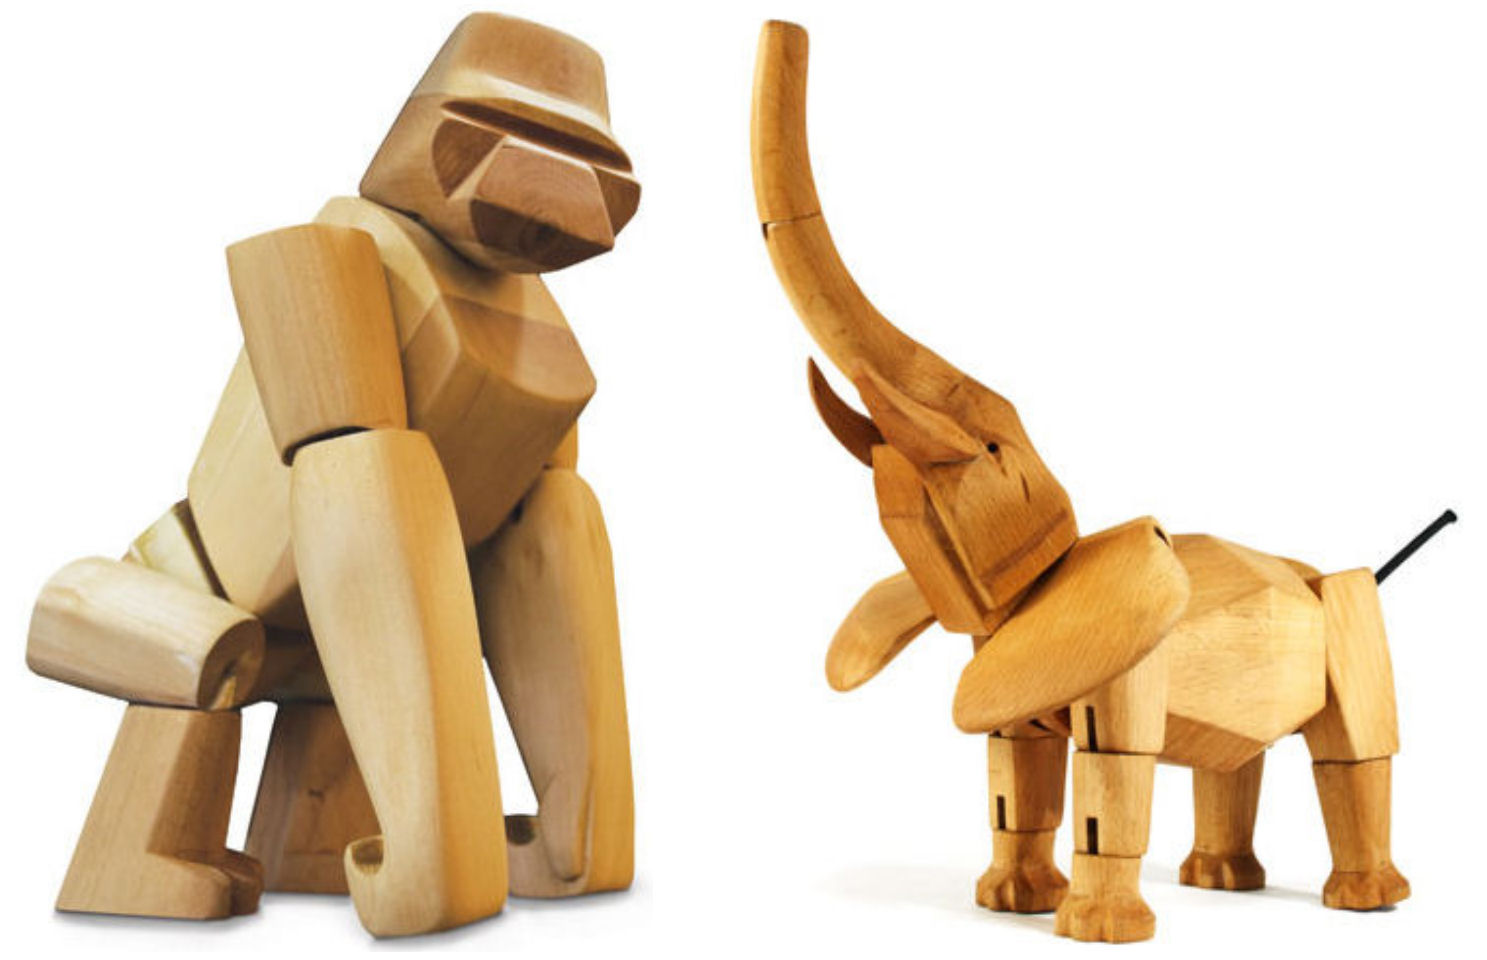 Simple Wooden Toys Articulated wooden toys: david